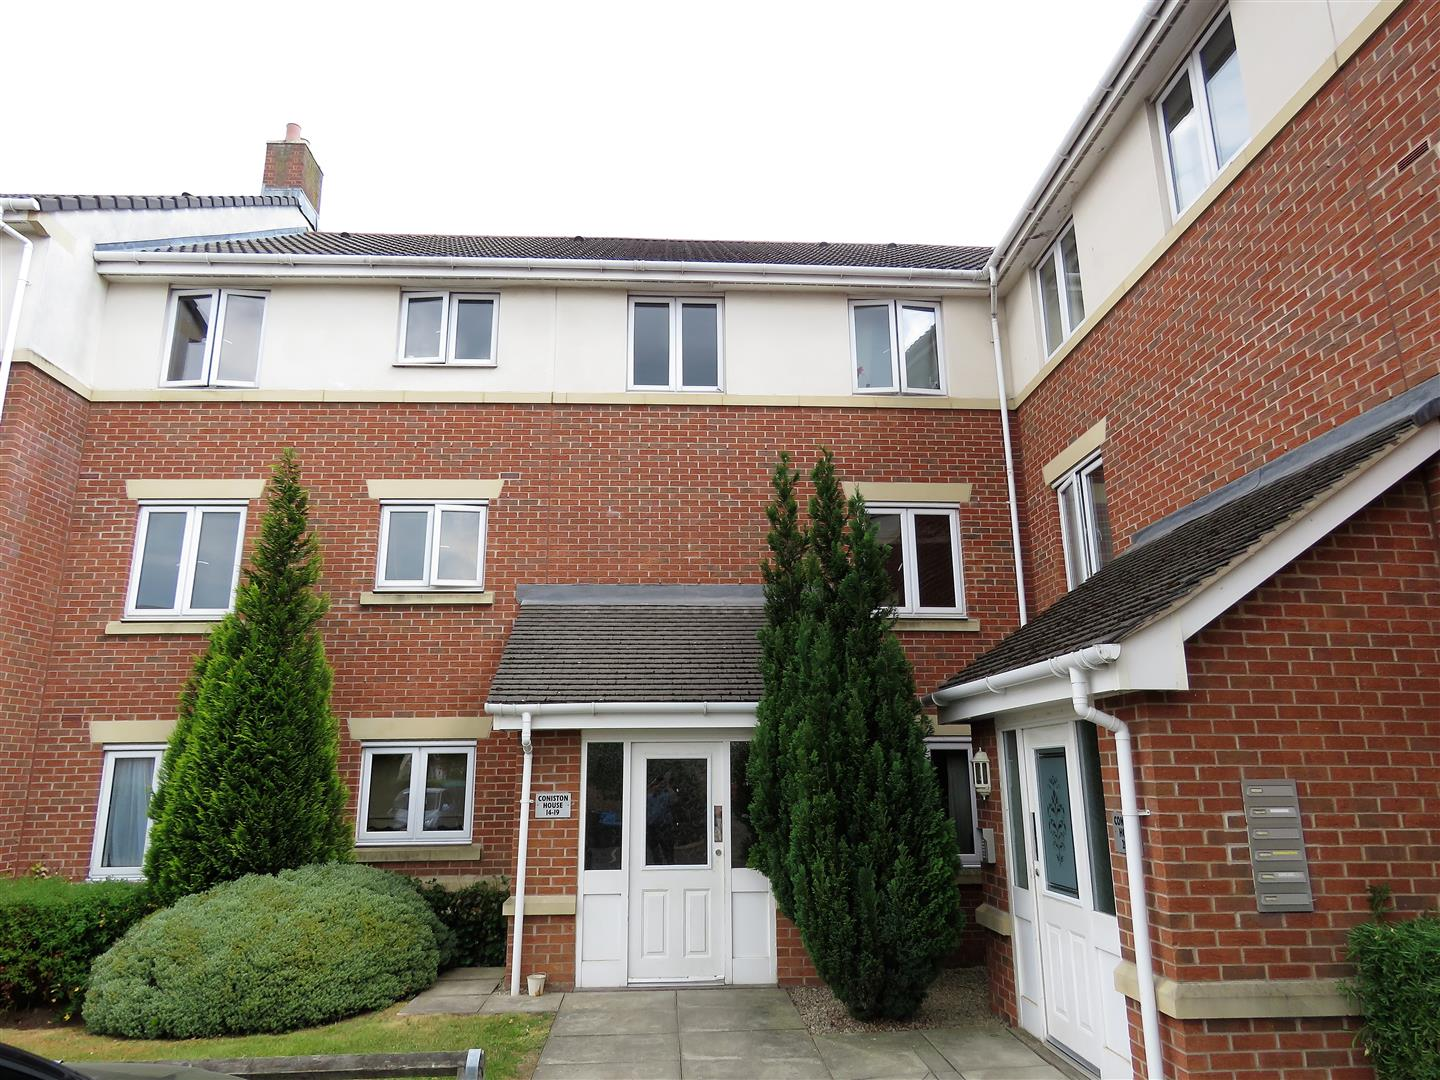 Apartment 18 Coniston House Spinner Croft Chesterfield